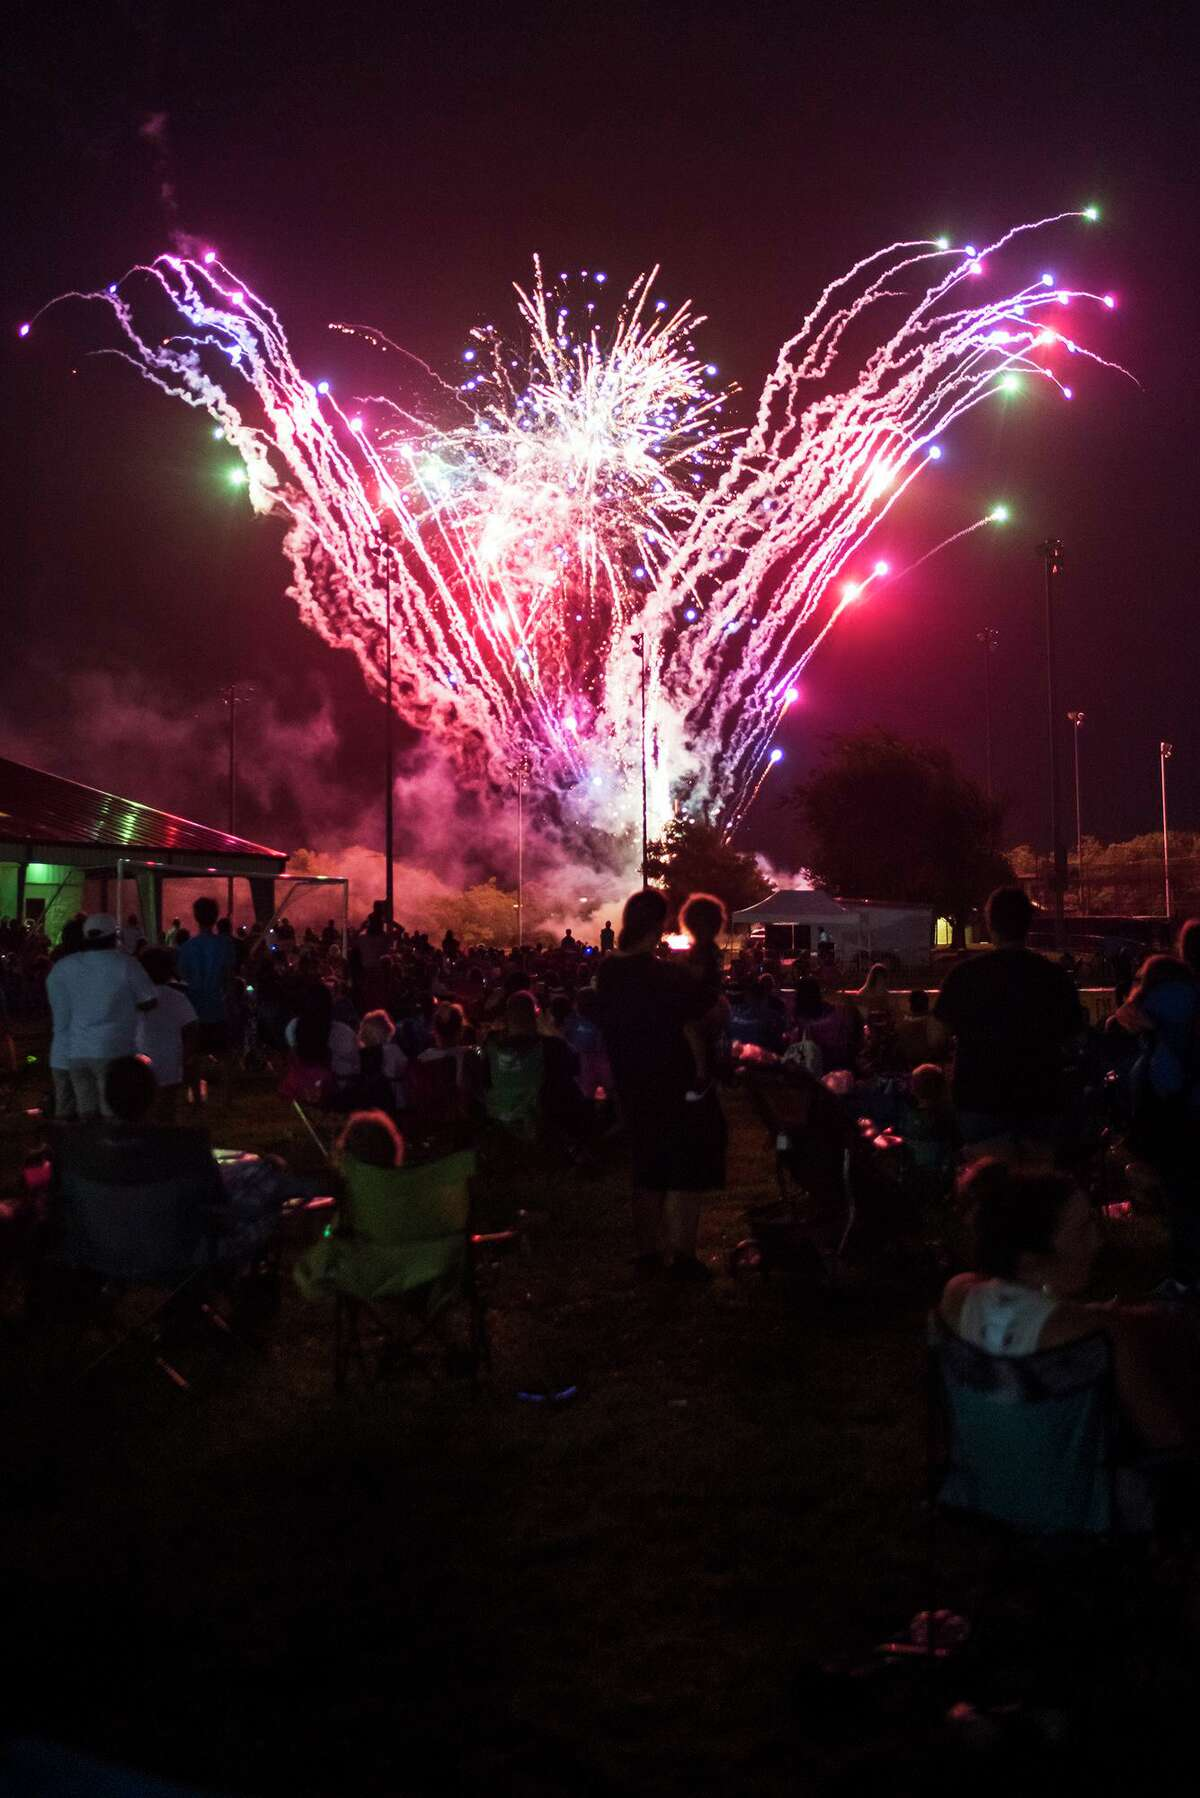 In League City, the Fourth of July festivities begin a day early, on July 3 at 4 p.m. on the grounds of the Chester Davis Sportsplex with an afternoon of family oriented fun, food and games, to be capped off with a firework display at dusk.